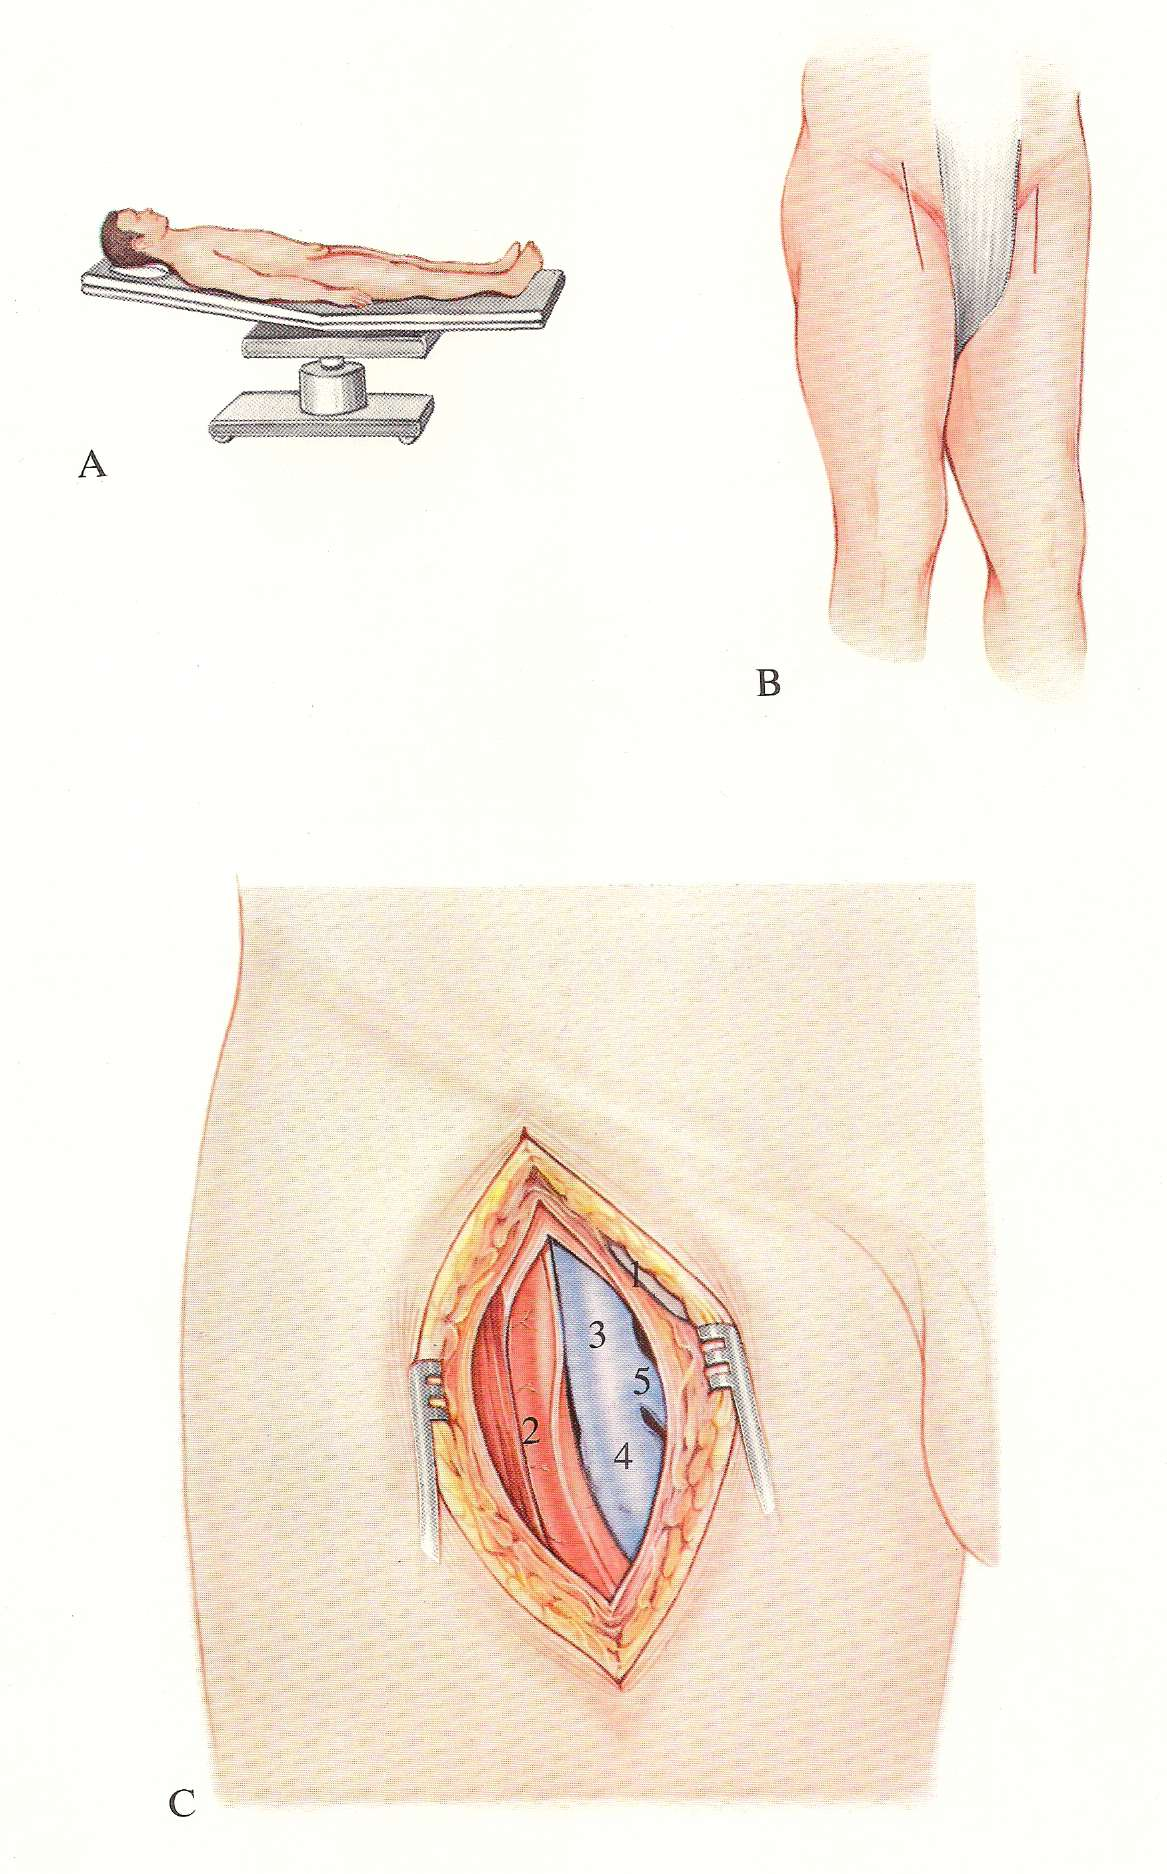 Proximal superficial femoral vein interruption